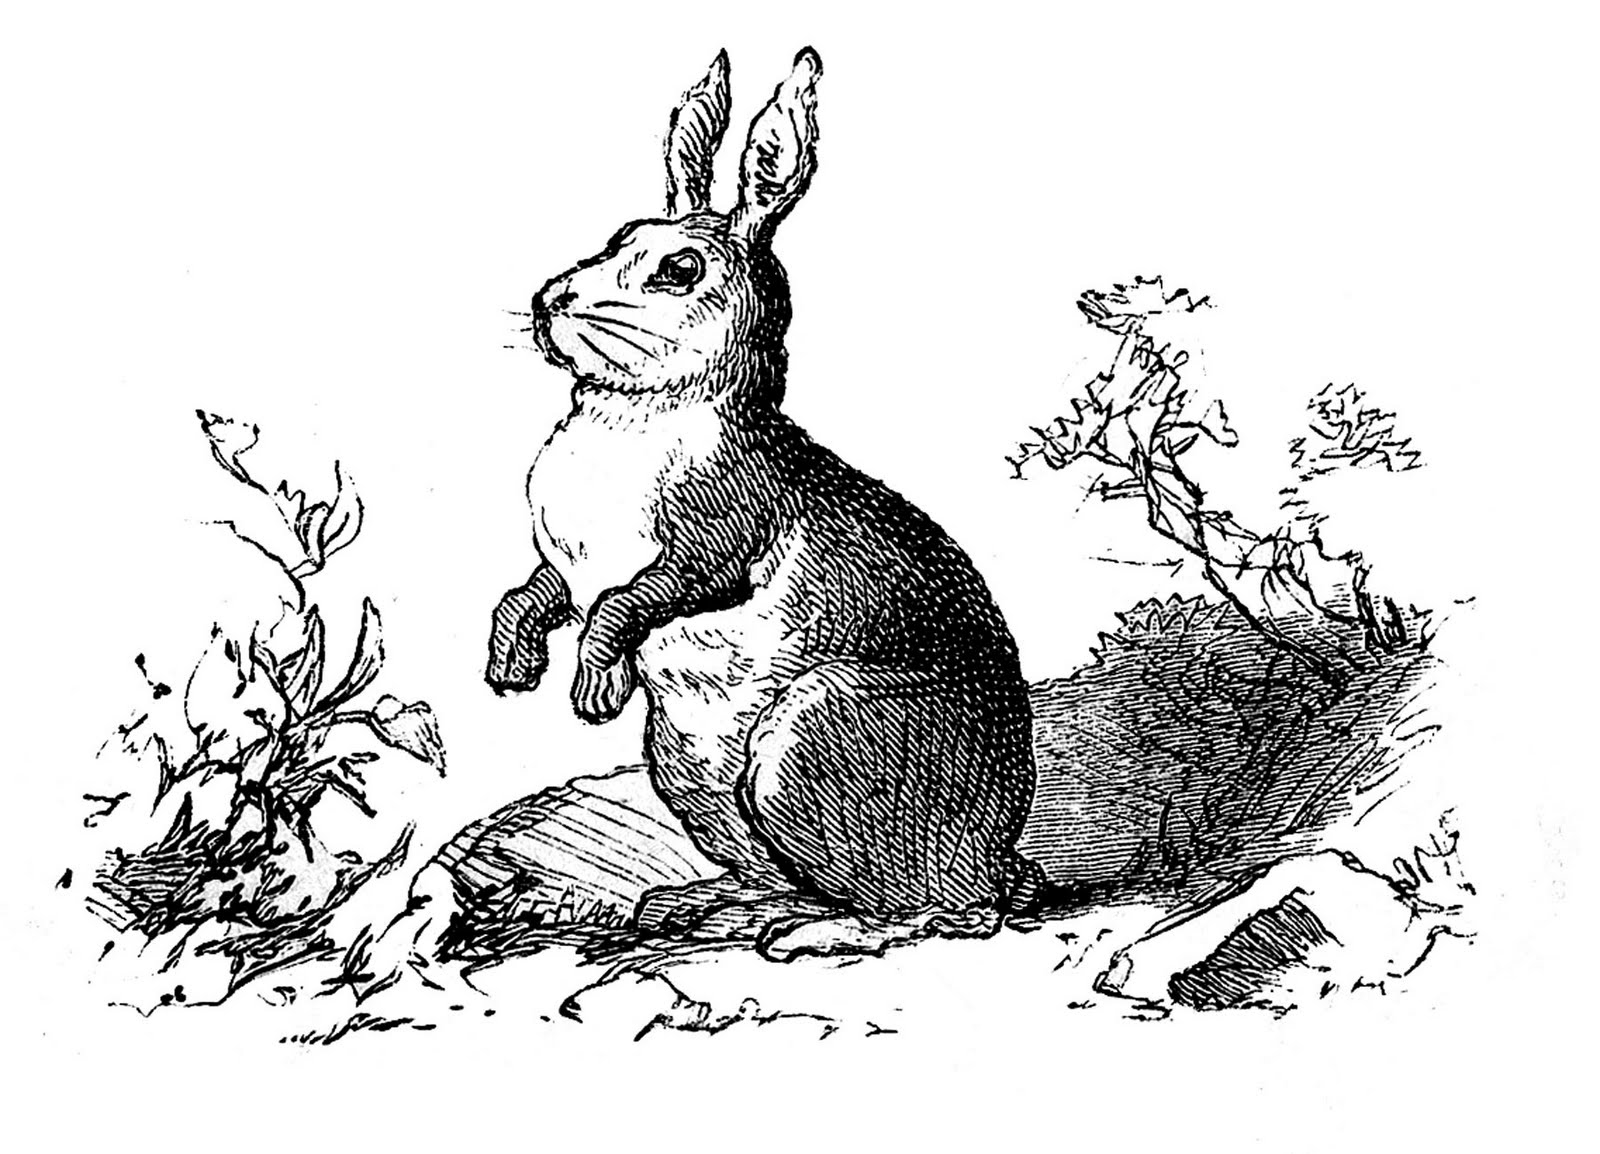 bunny-vintage-engraving-graphicsfairy